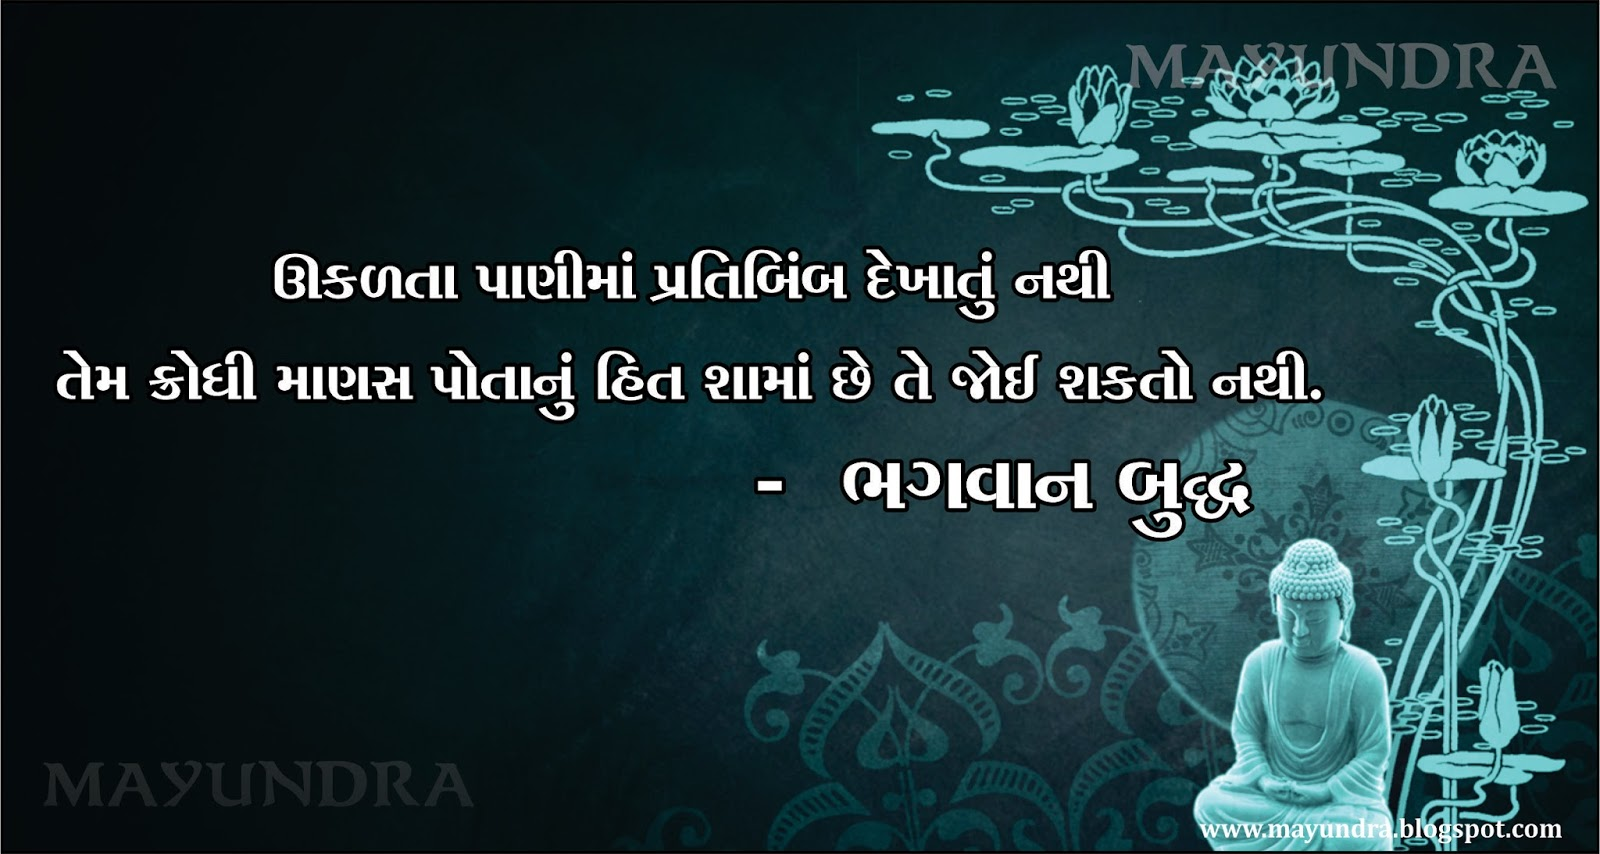 Gujarati Quotes Bhagwan Buddha Quotes India Quotes Health